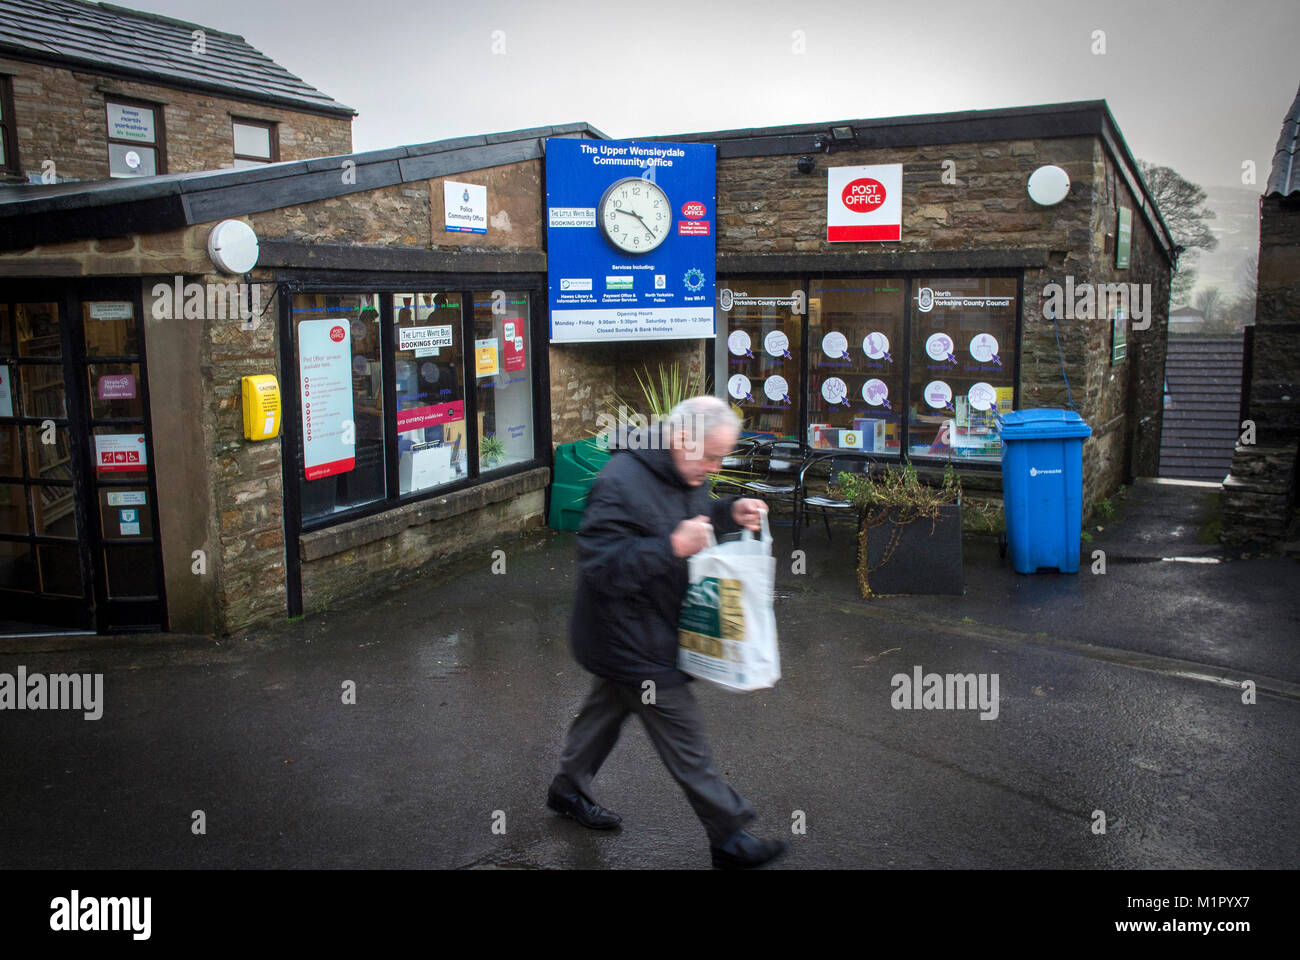 The Upper Wensleydale Community Office in Hawes in the Richmondshire district of North Yorkshire, England Stock Photo